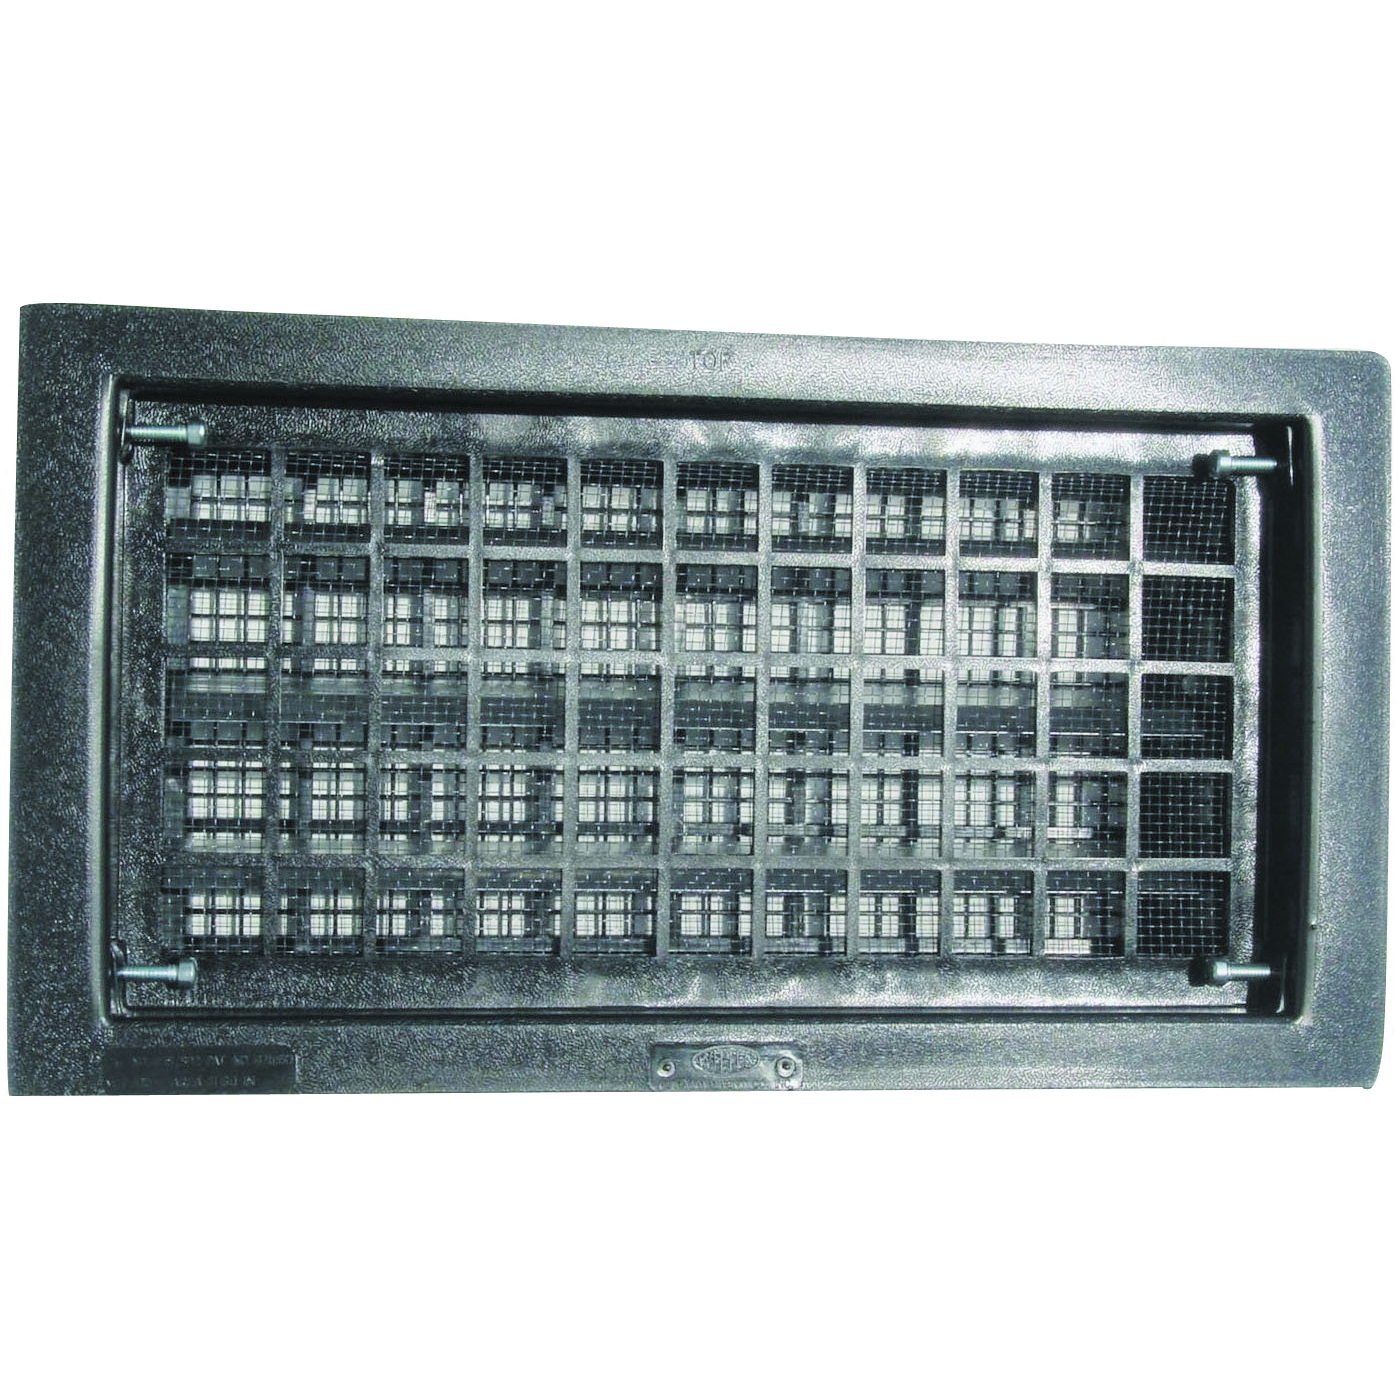 Picture of Bestvents 315CBL Foundation Vent, 62 sq-in Net Free Ventilating Area, Mesh Grill, Thermoplastic, Black Oxide